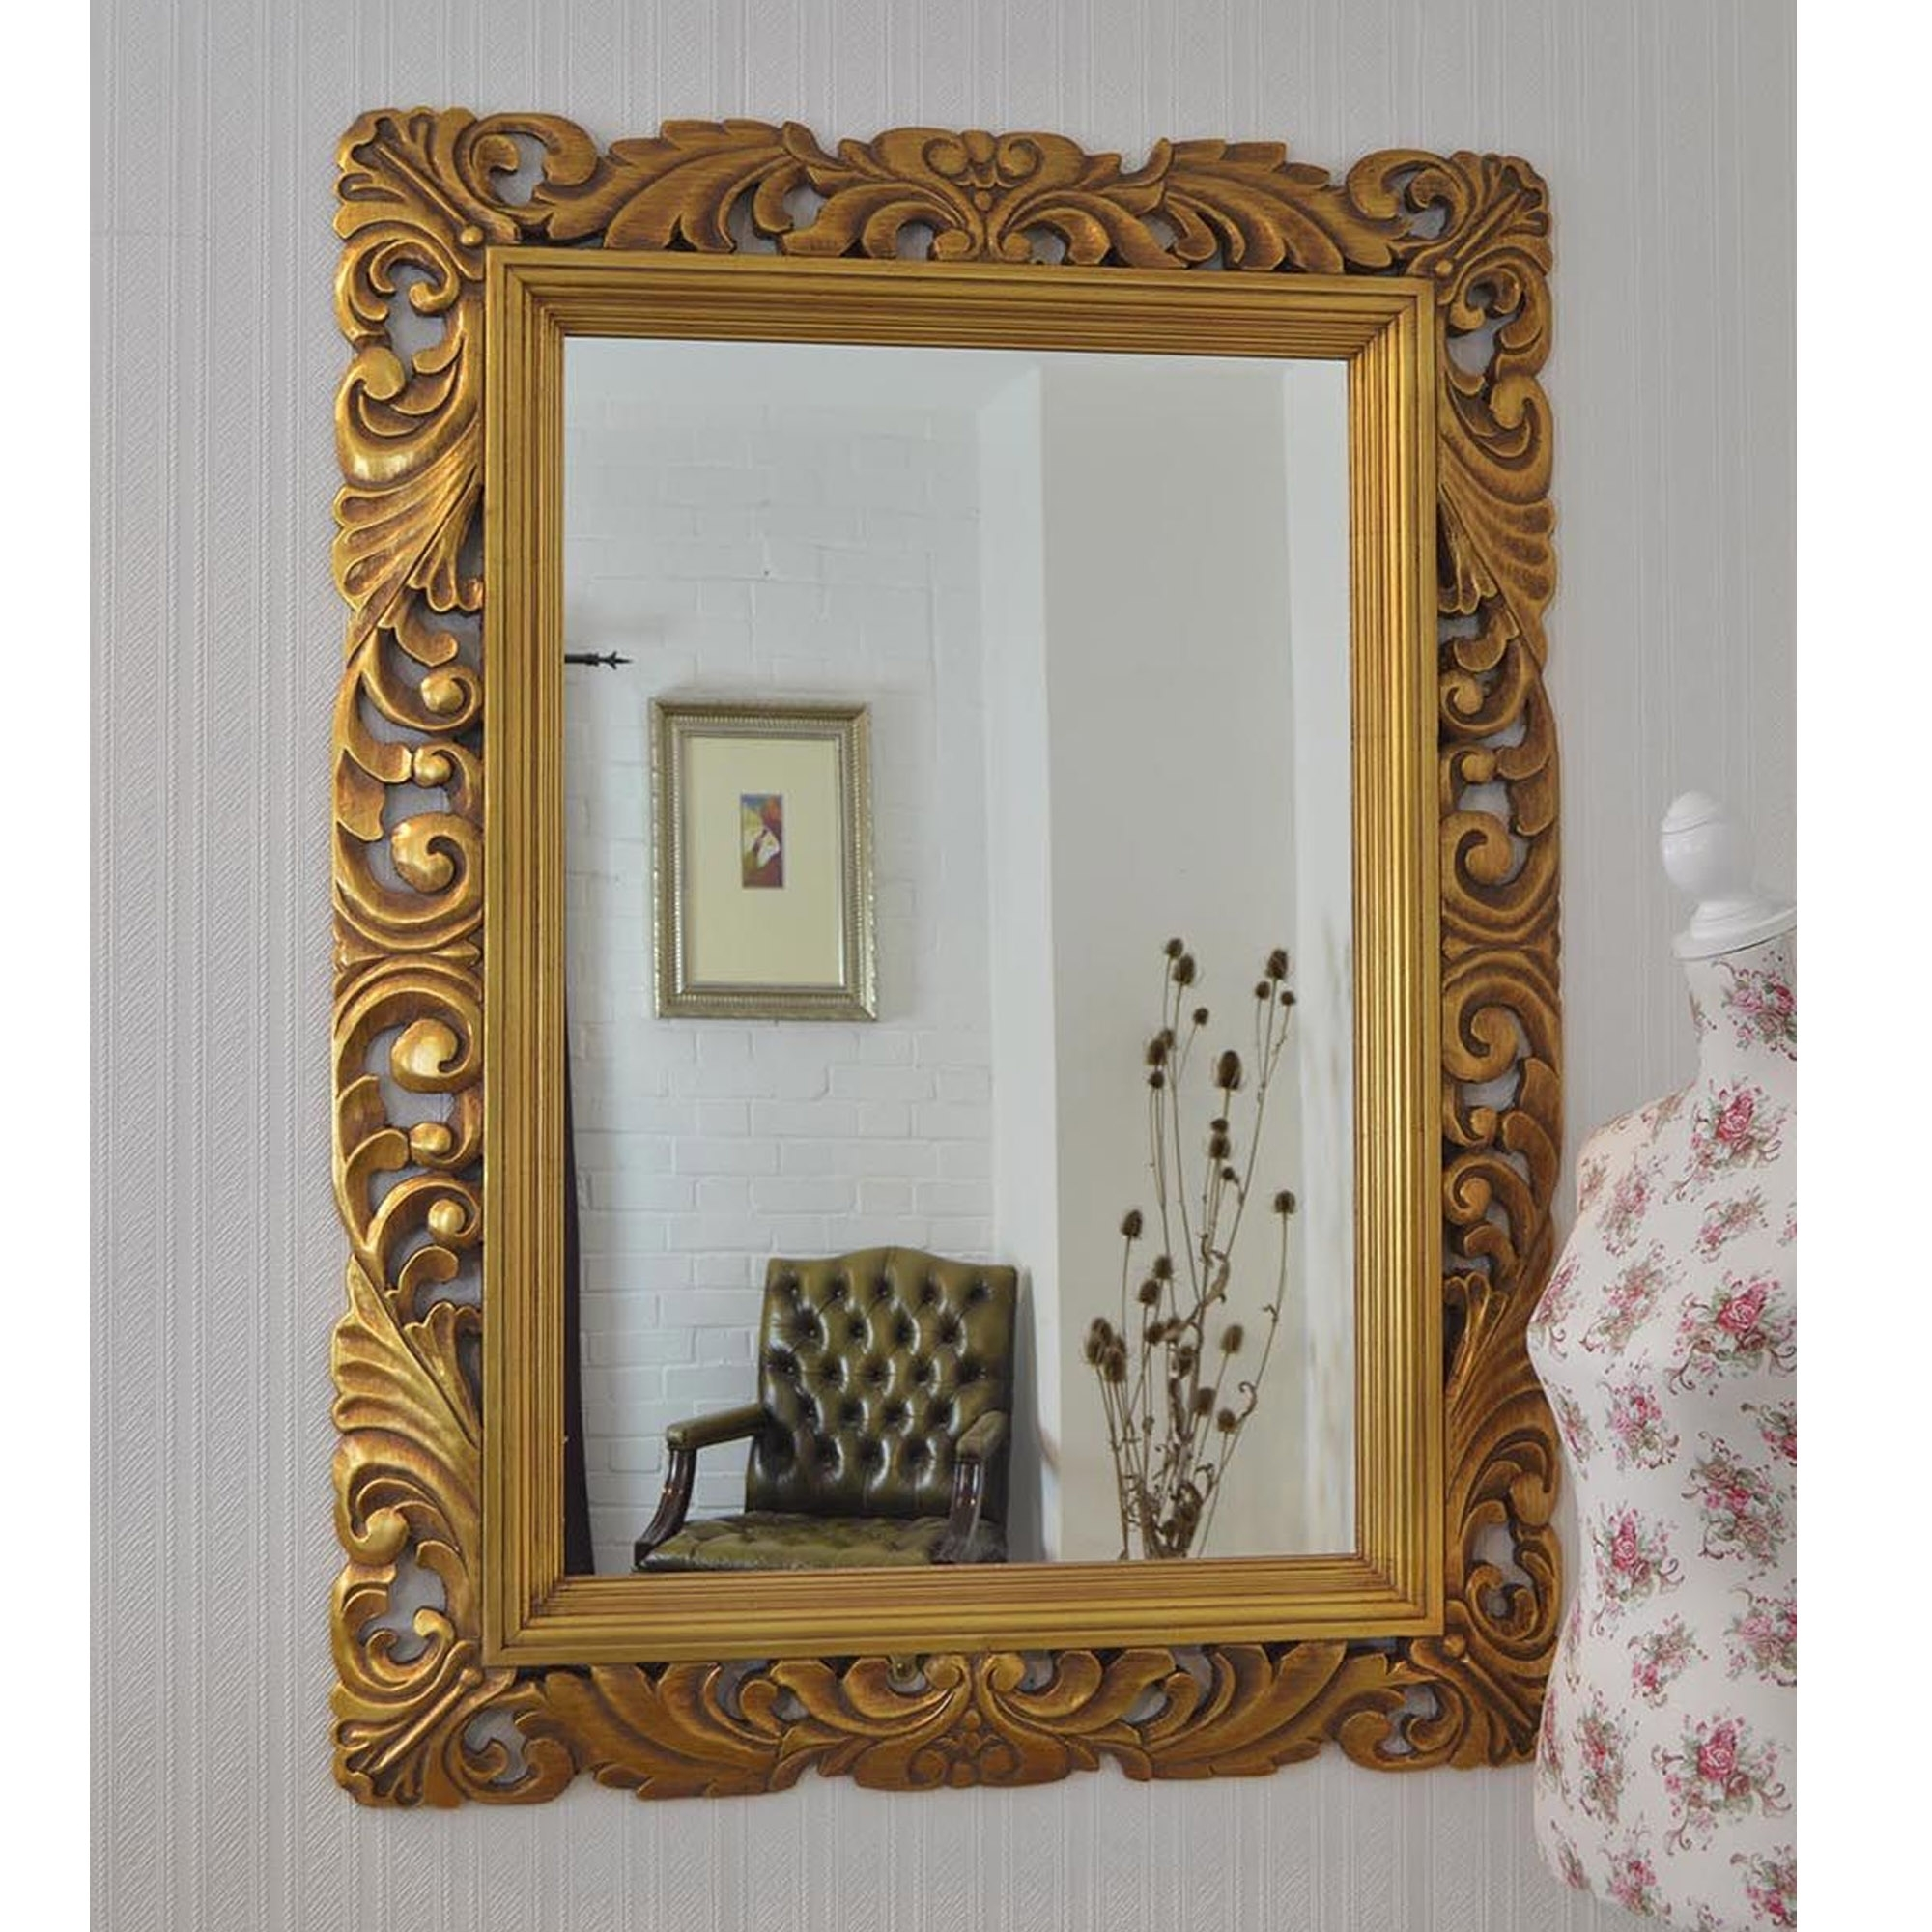 Ornate Framed Gold Antique French Style Wall Mirror French Mirrors From Homesdirect 365 Uk